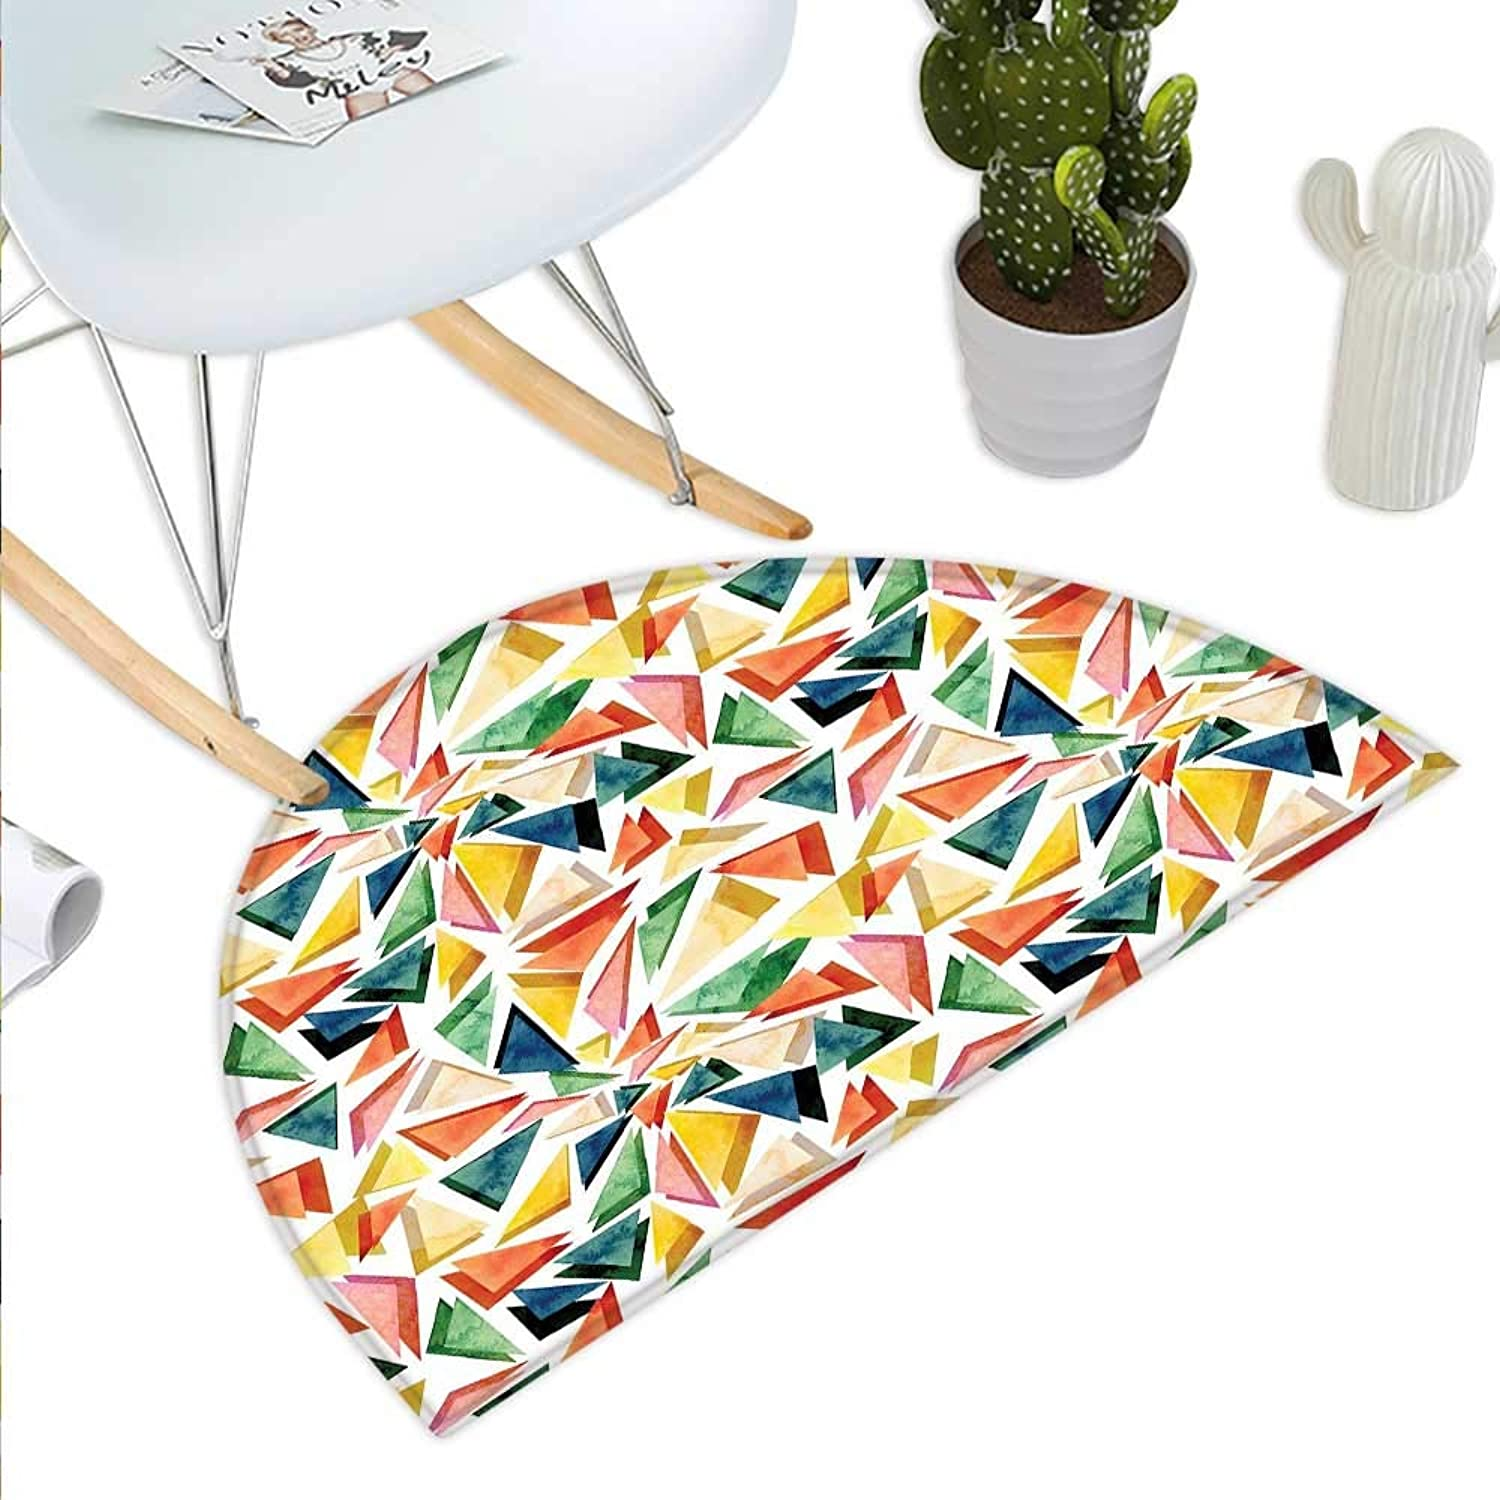 Watercolor Semicircle Doormat Triangle Pattern with Rainbow color Palette Abstract colorful Aquarelle Design Halfmoon doormats H 43.3  xD 64.9  Multicolor